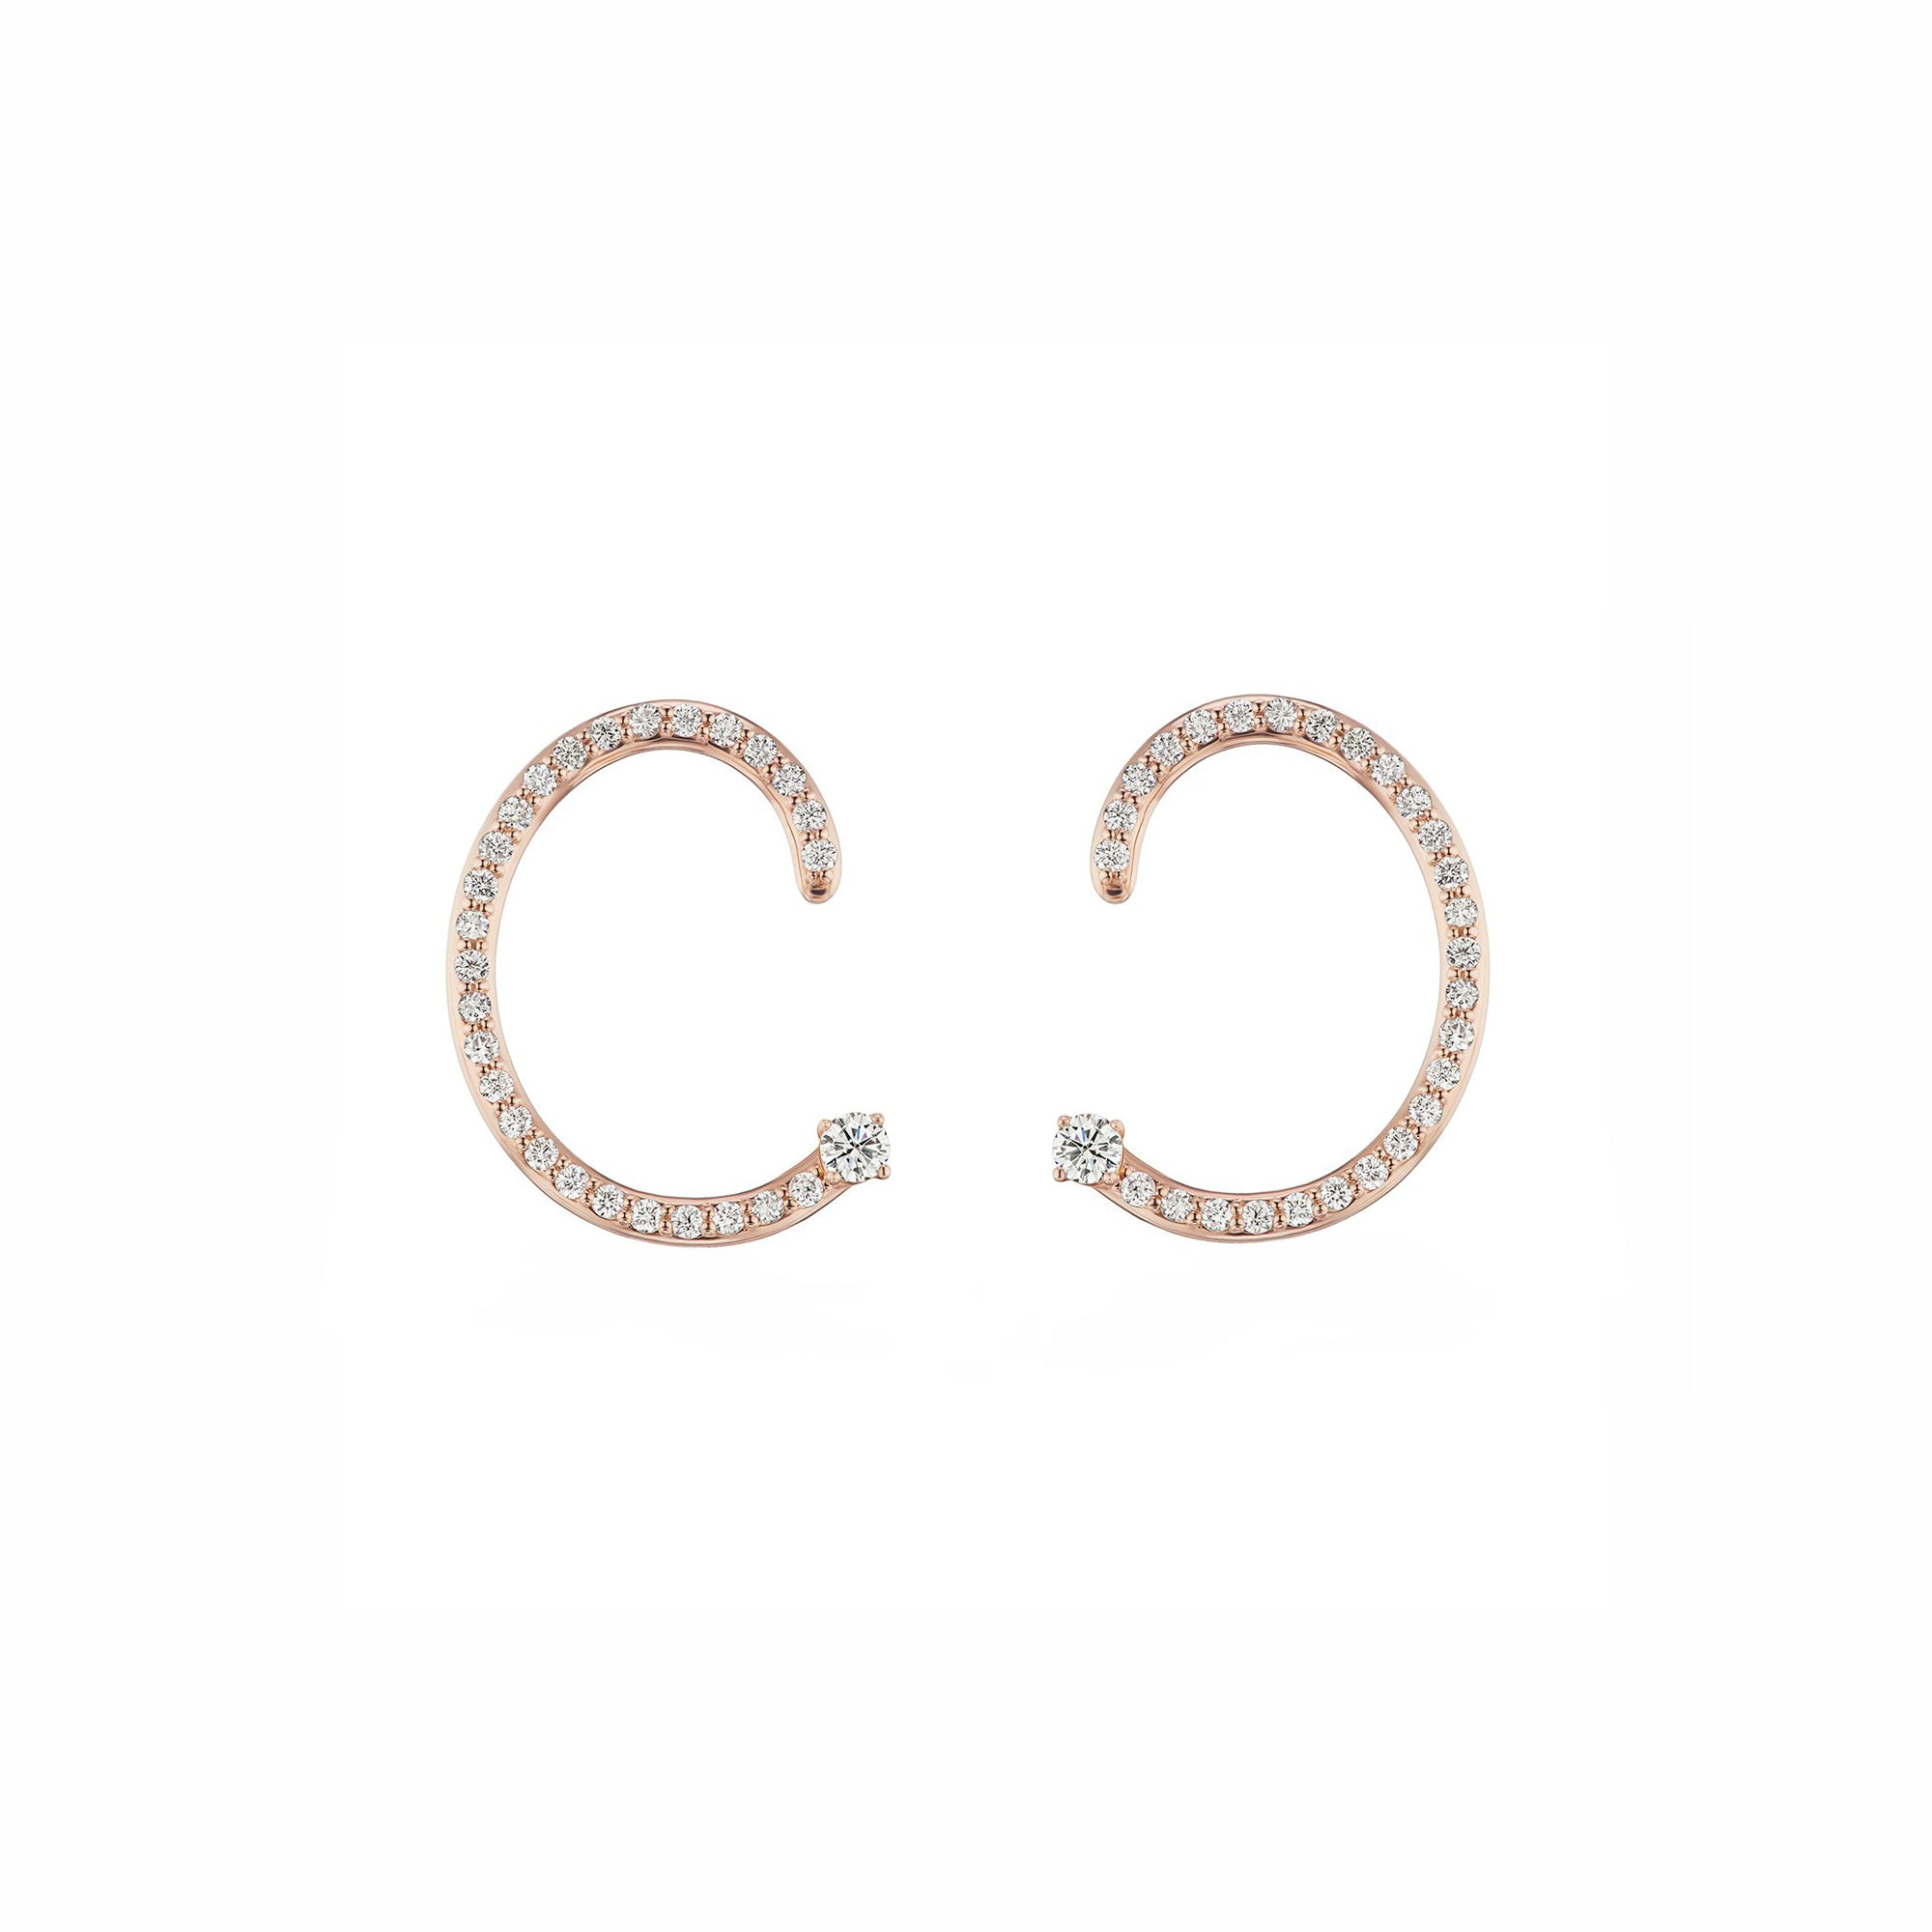 Pave Helical Hoops - Altruist - Earrings | Broken English Jewelry